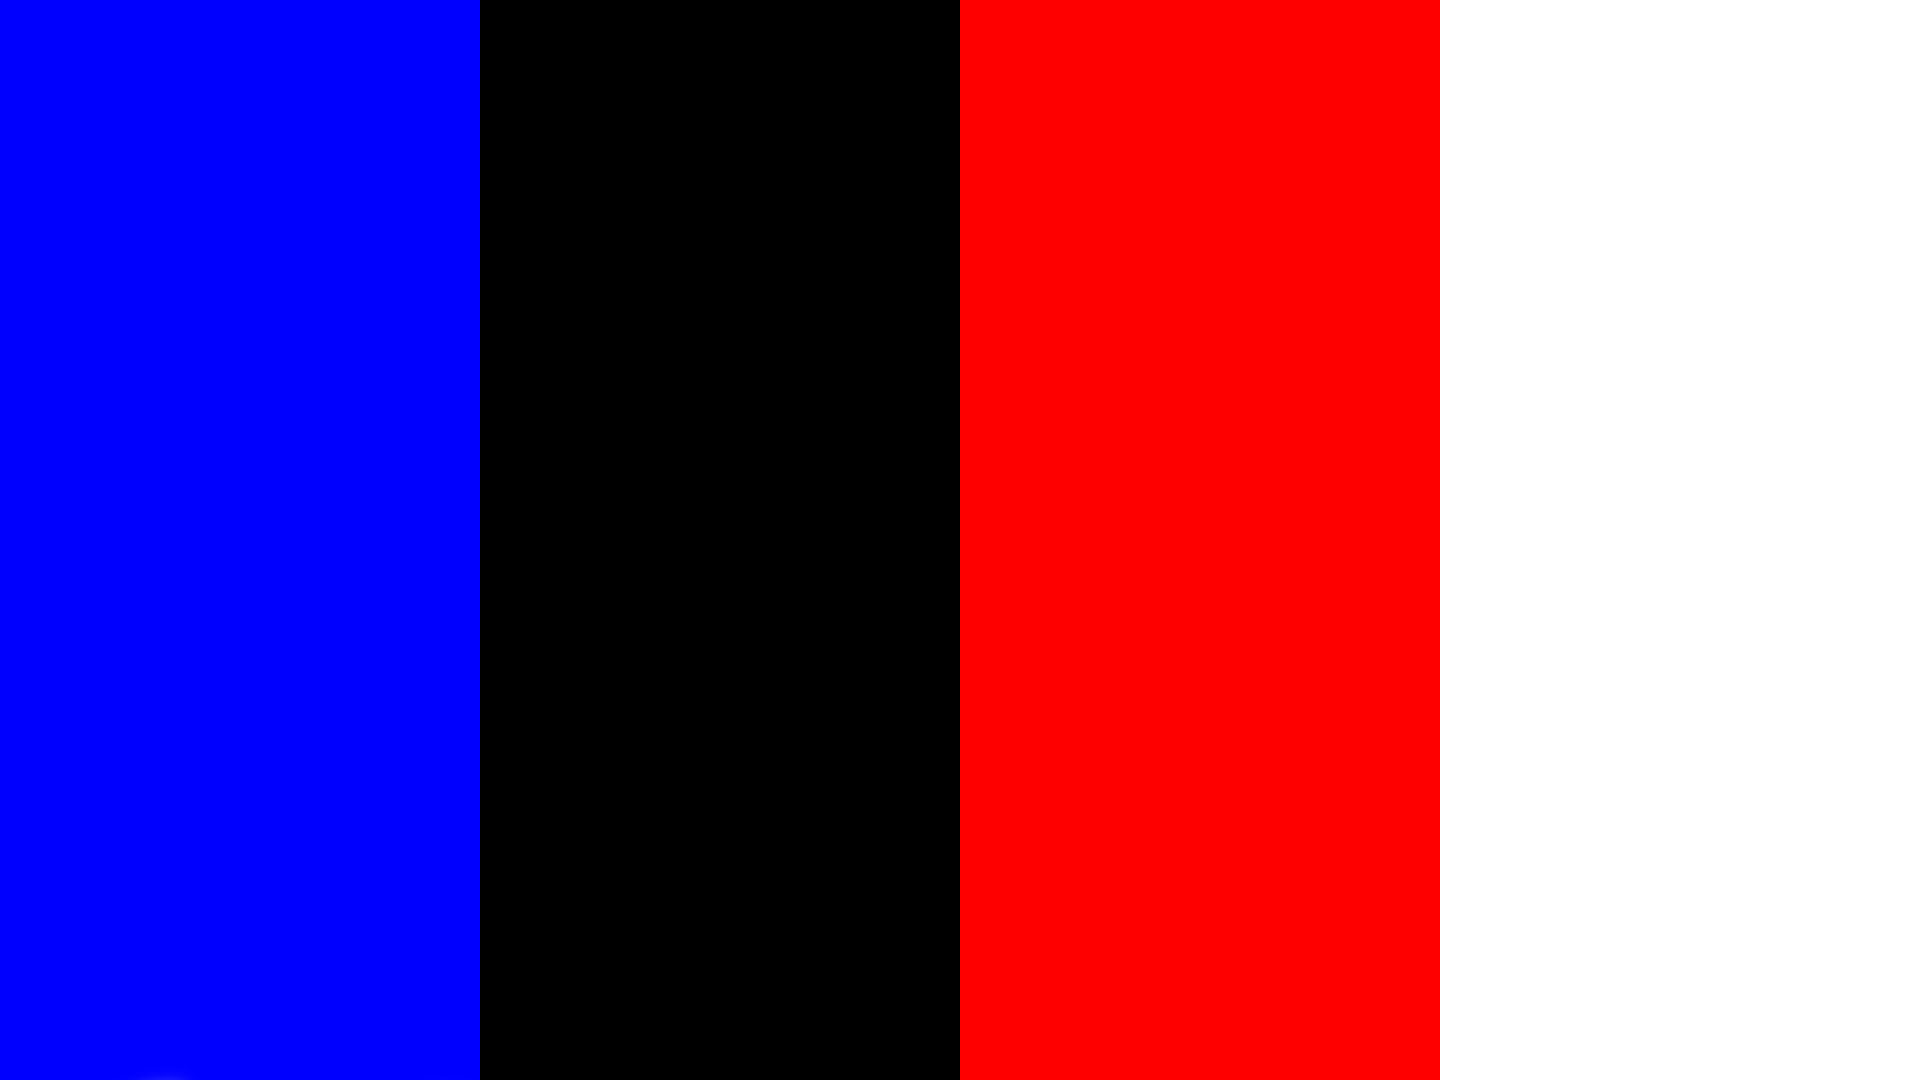 Blue Black Red White